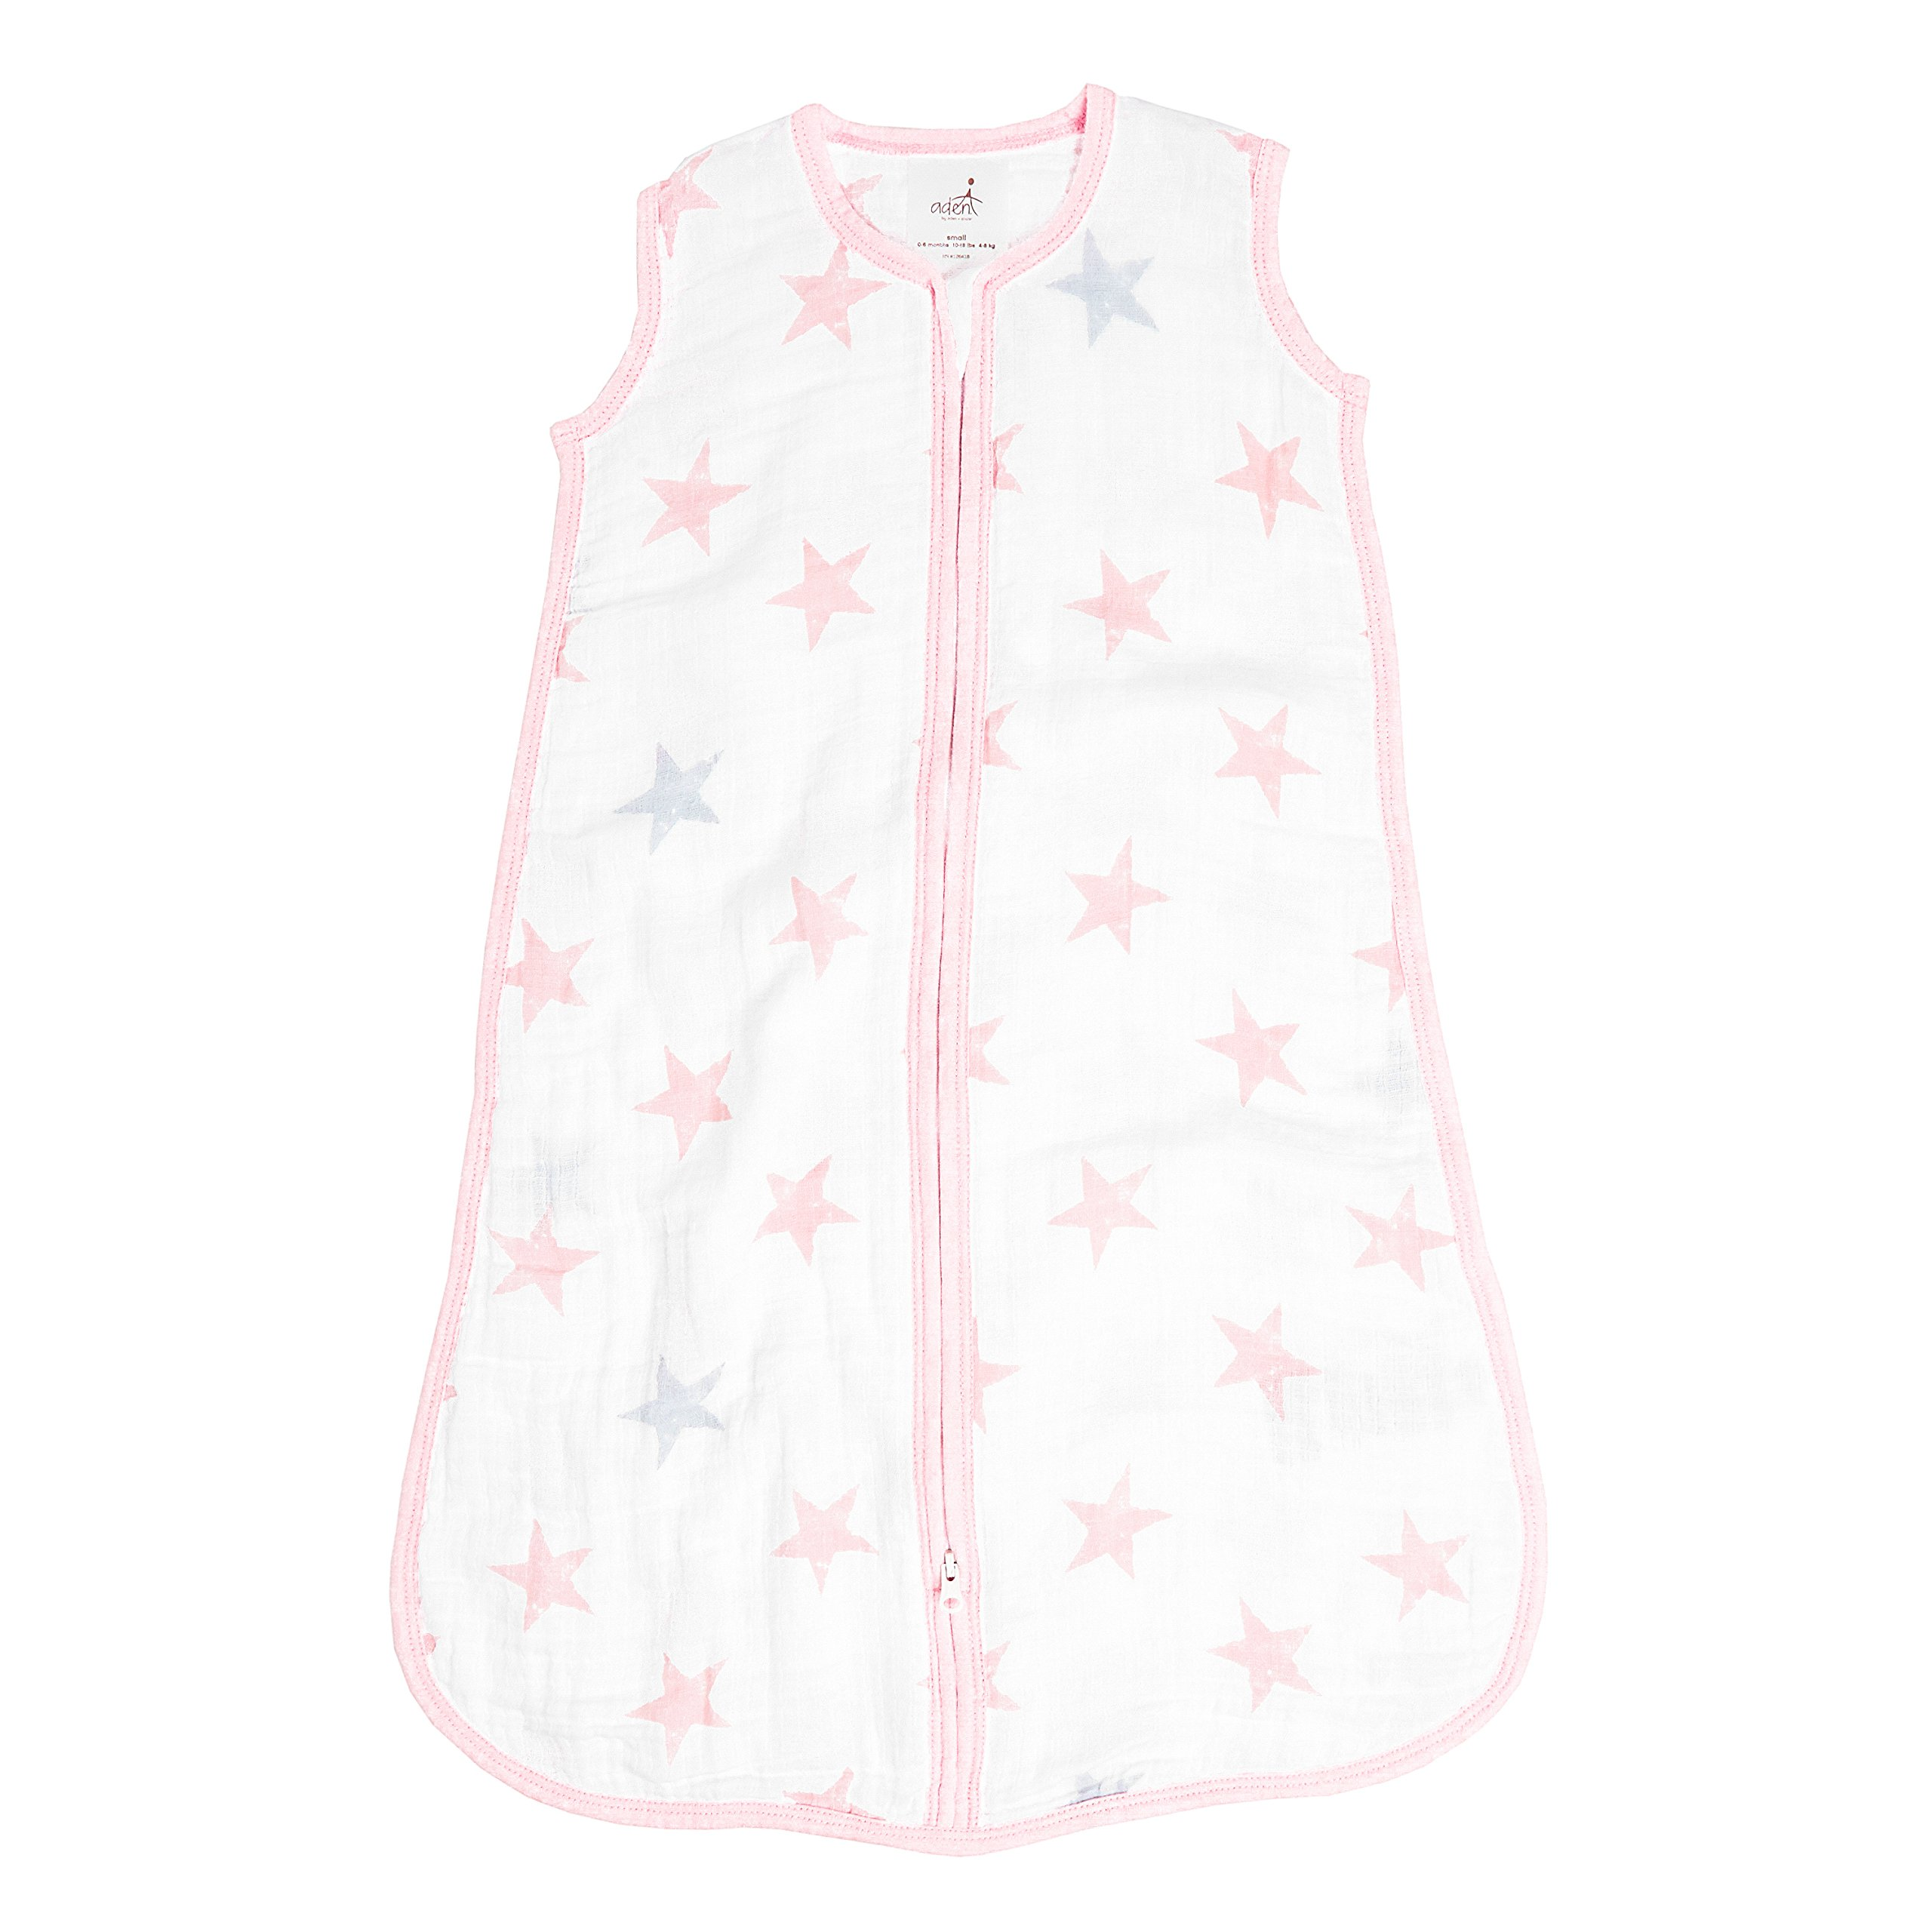 Aden by Aden + Anais Classic Sleeping Bag, 100% Cotton Muslin, Wearable Baby Blanket, Doll, Stars, Small, 0-6 Months